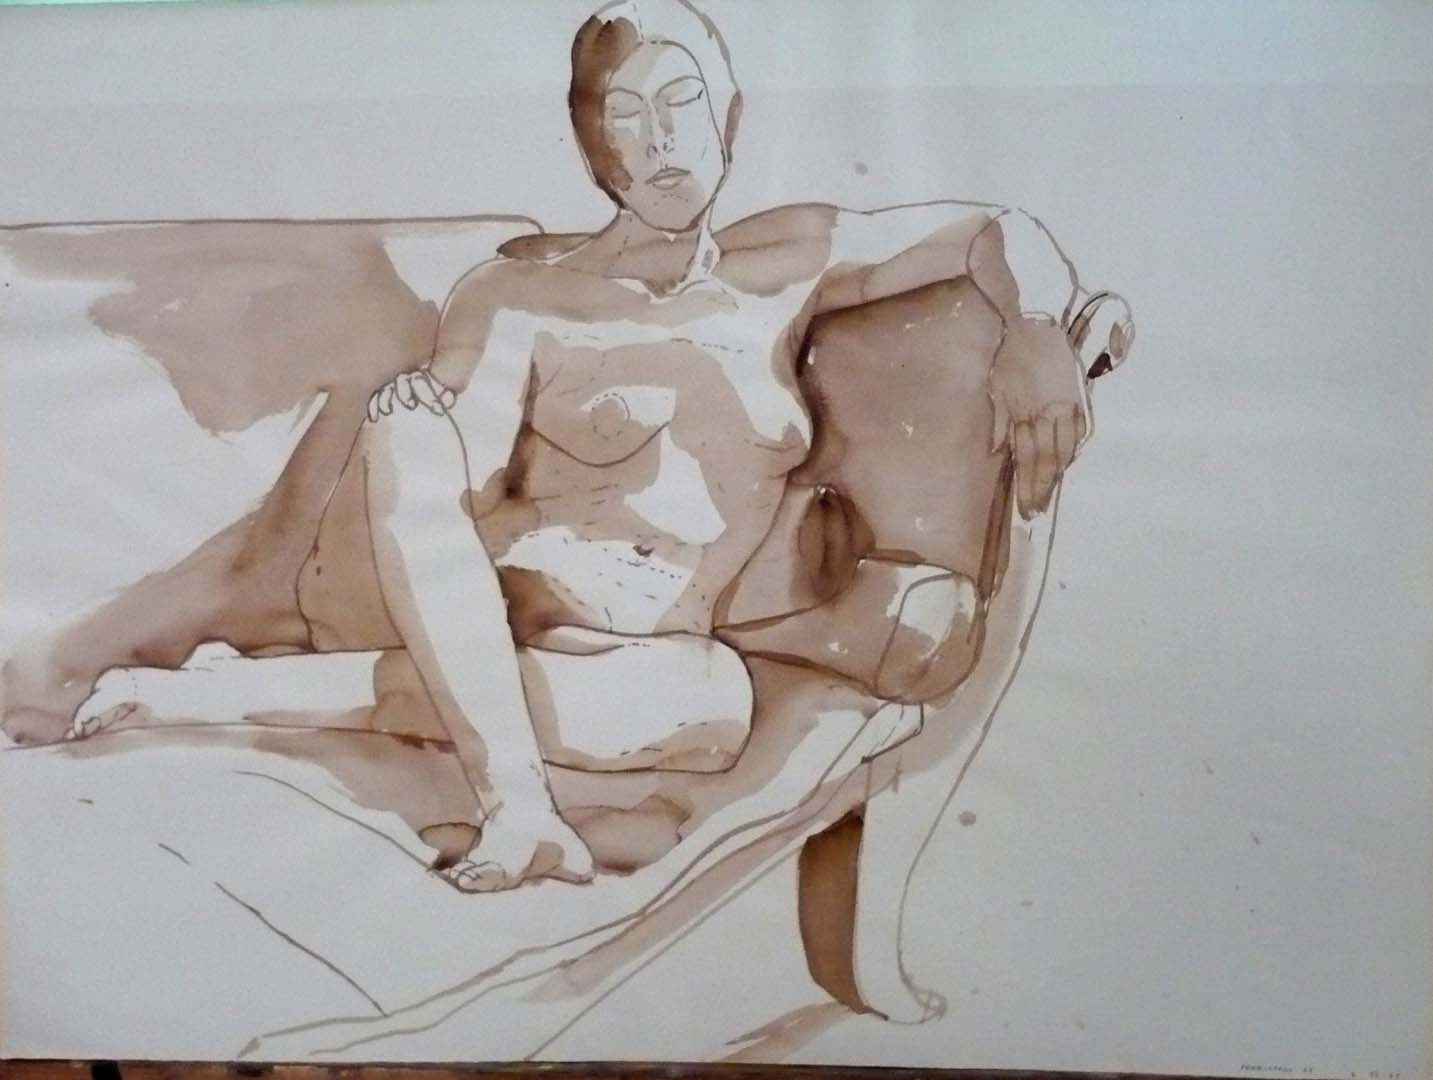 1969 Female Model Seated on Sofa Sepia 22 x 29.875